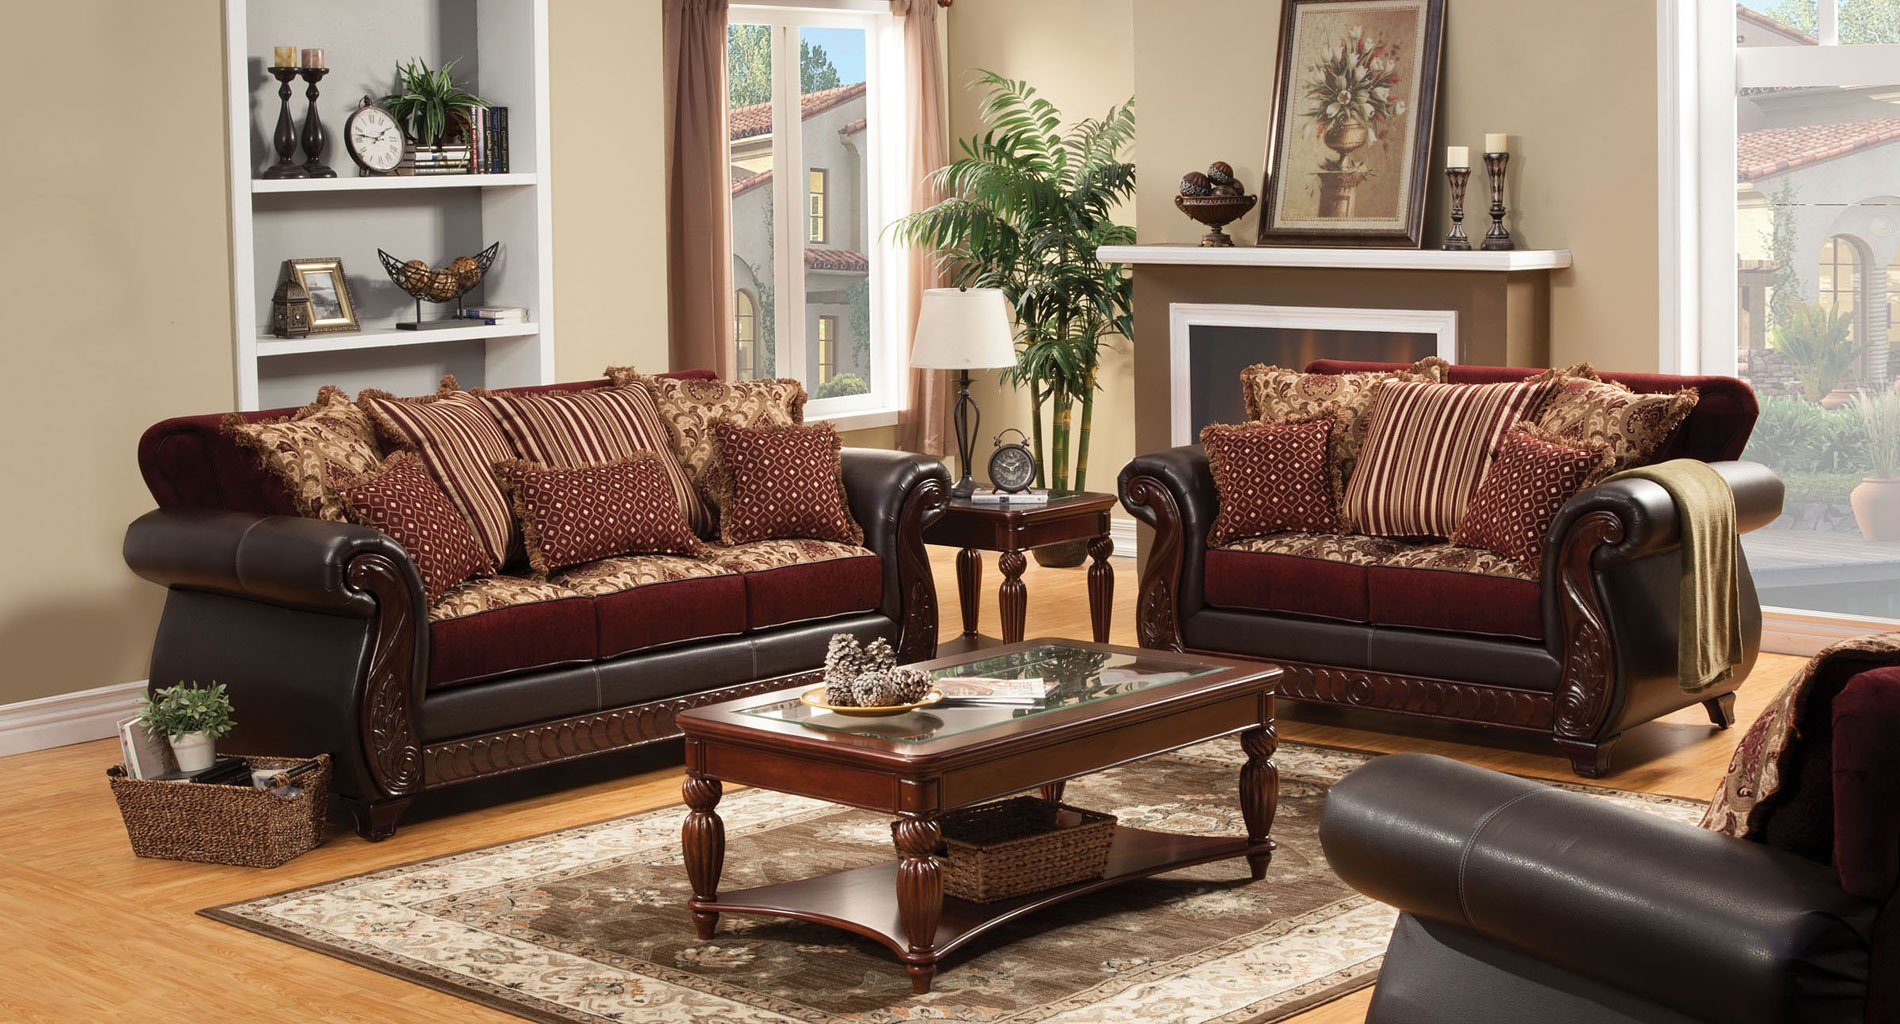 Franklin Living Room Set Burgundy By Furniture Of